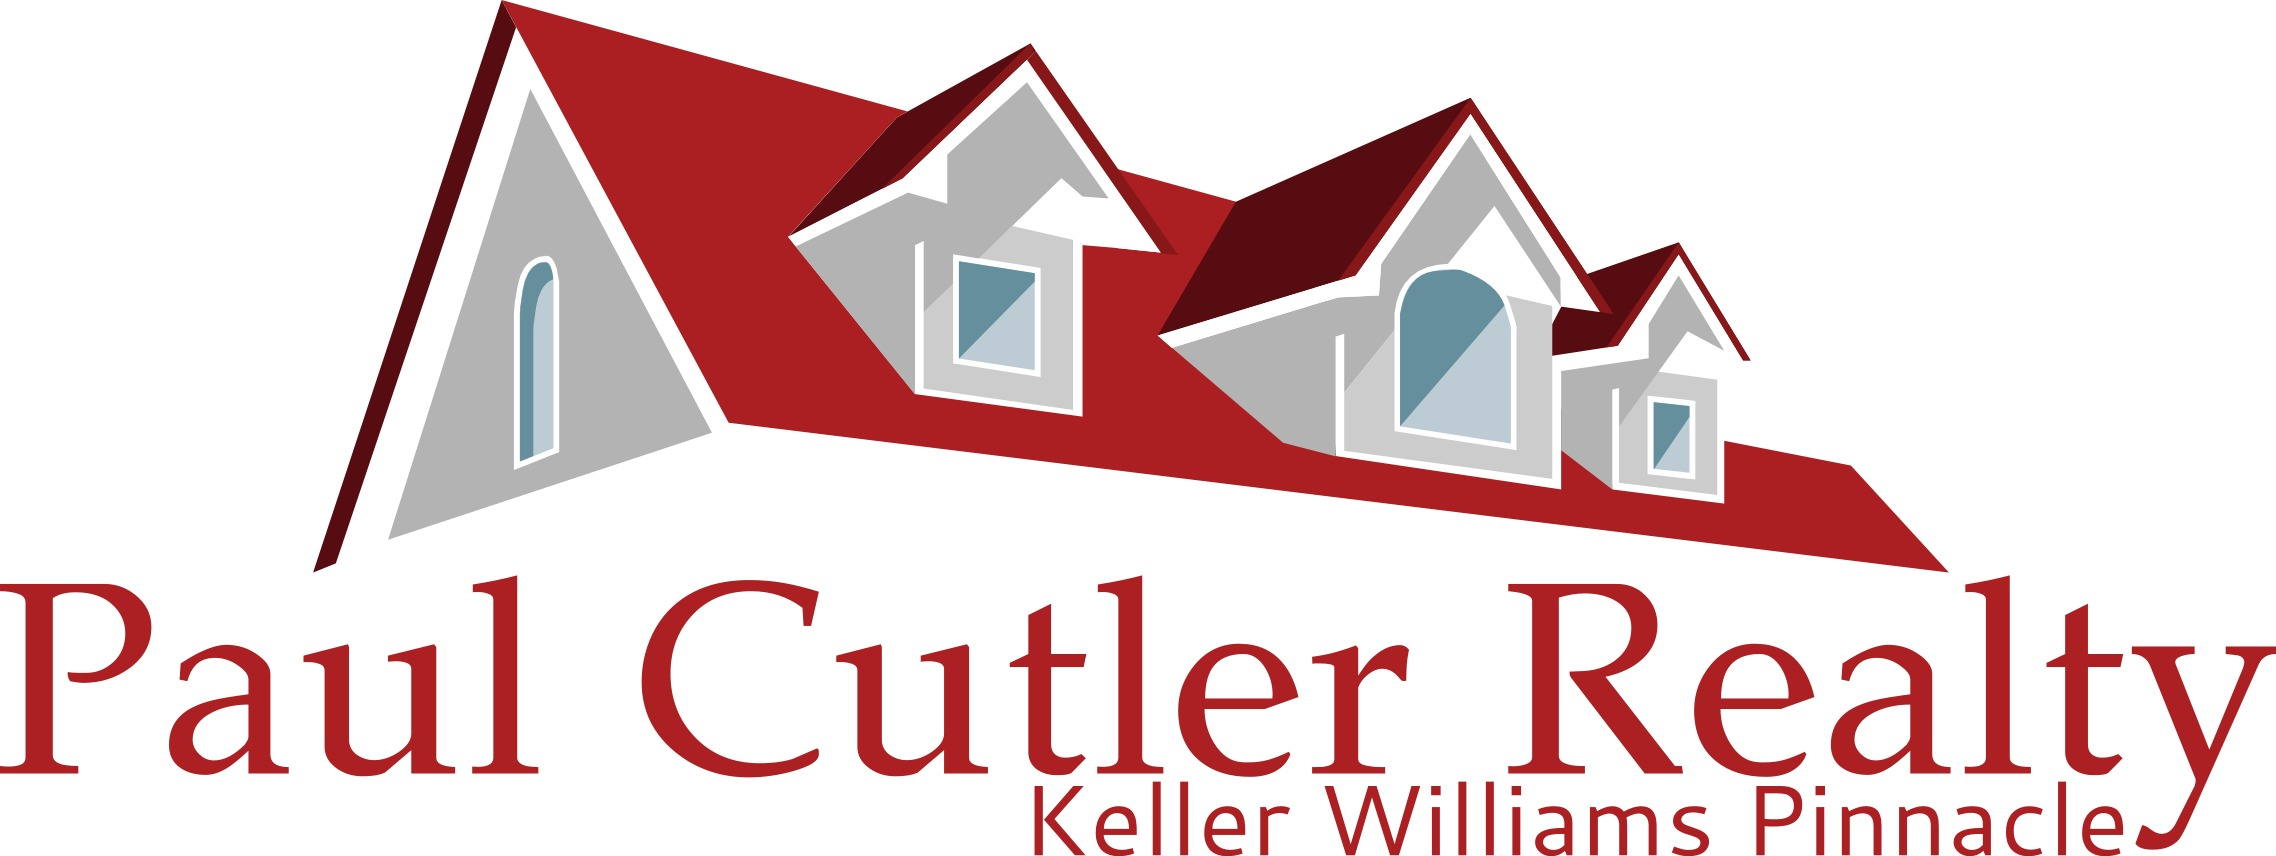 Paul Cutler Realty Serves Southern Worcester and Windham County CT